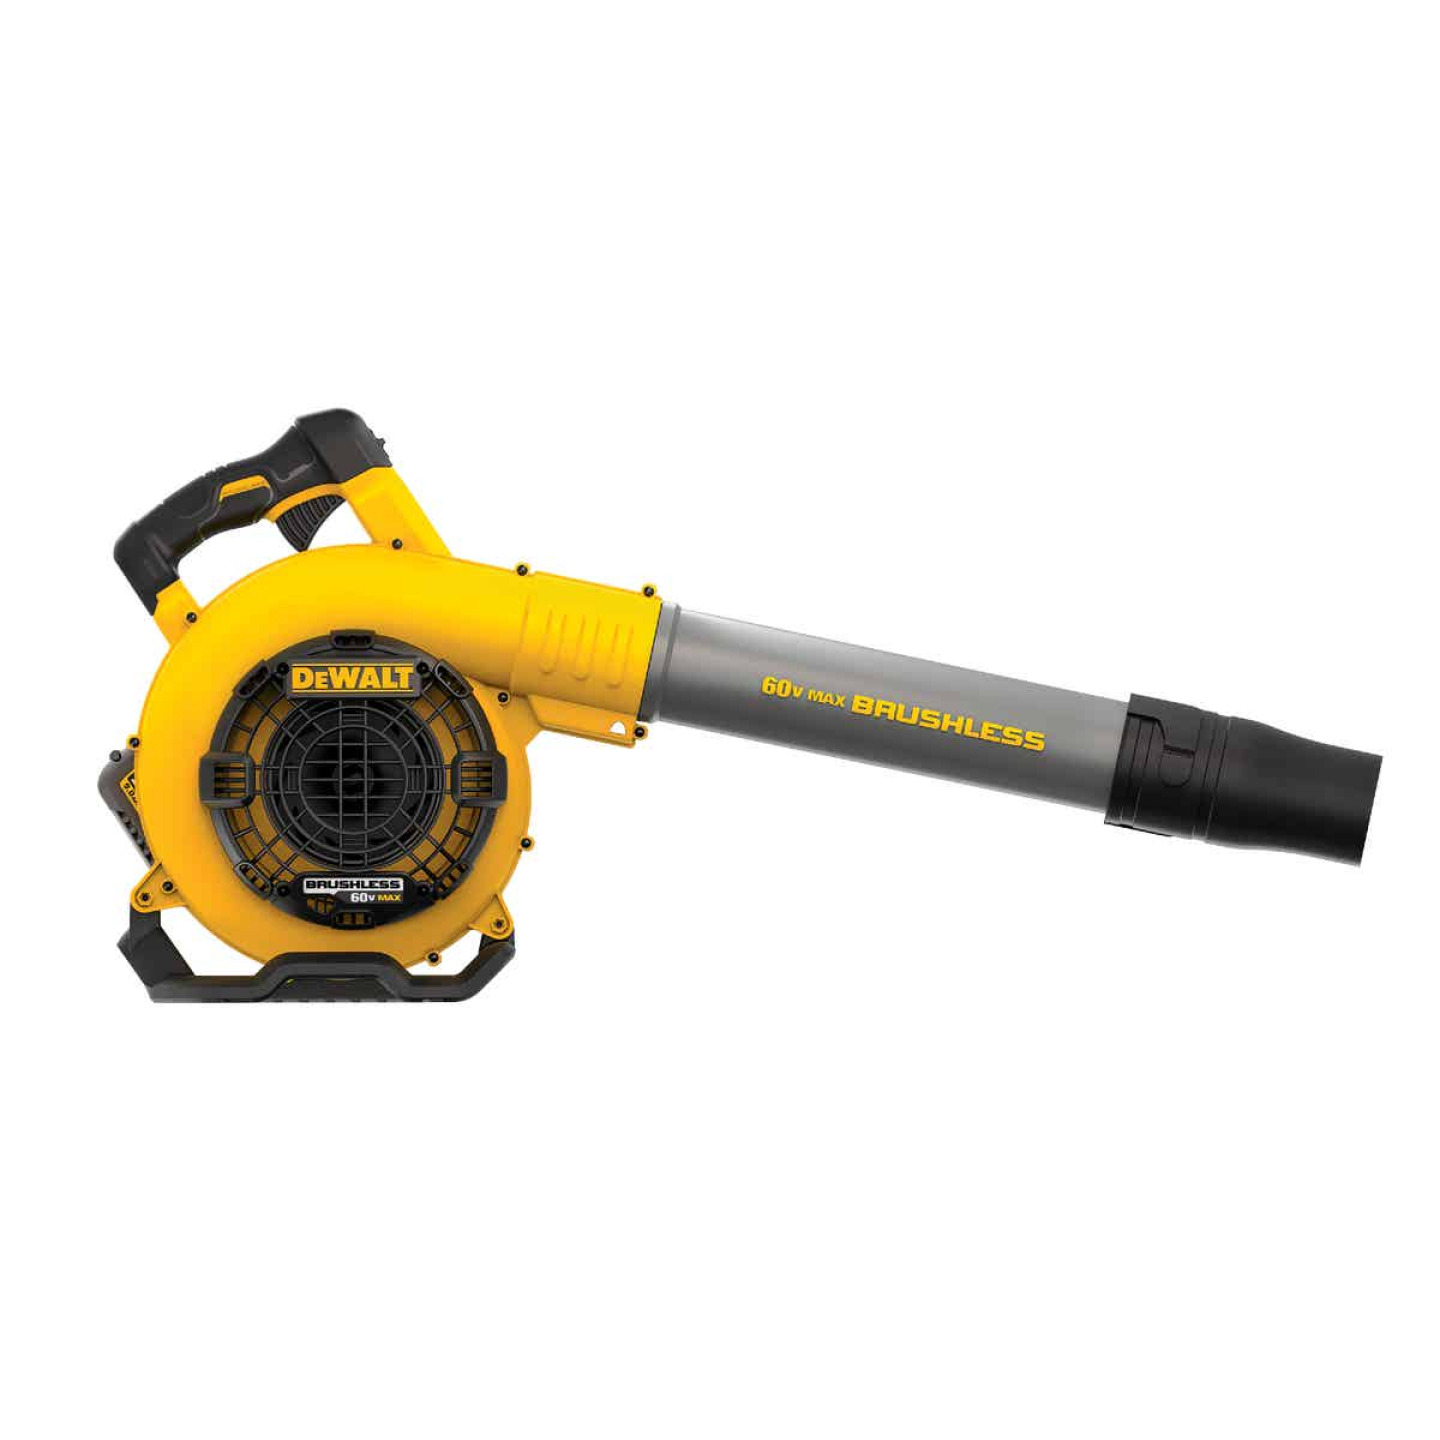 60V MAX Flexvolt Brushless Handheld Axial Blower Image 2